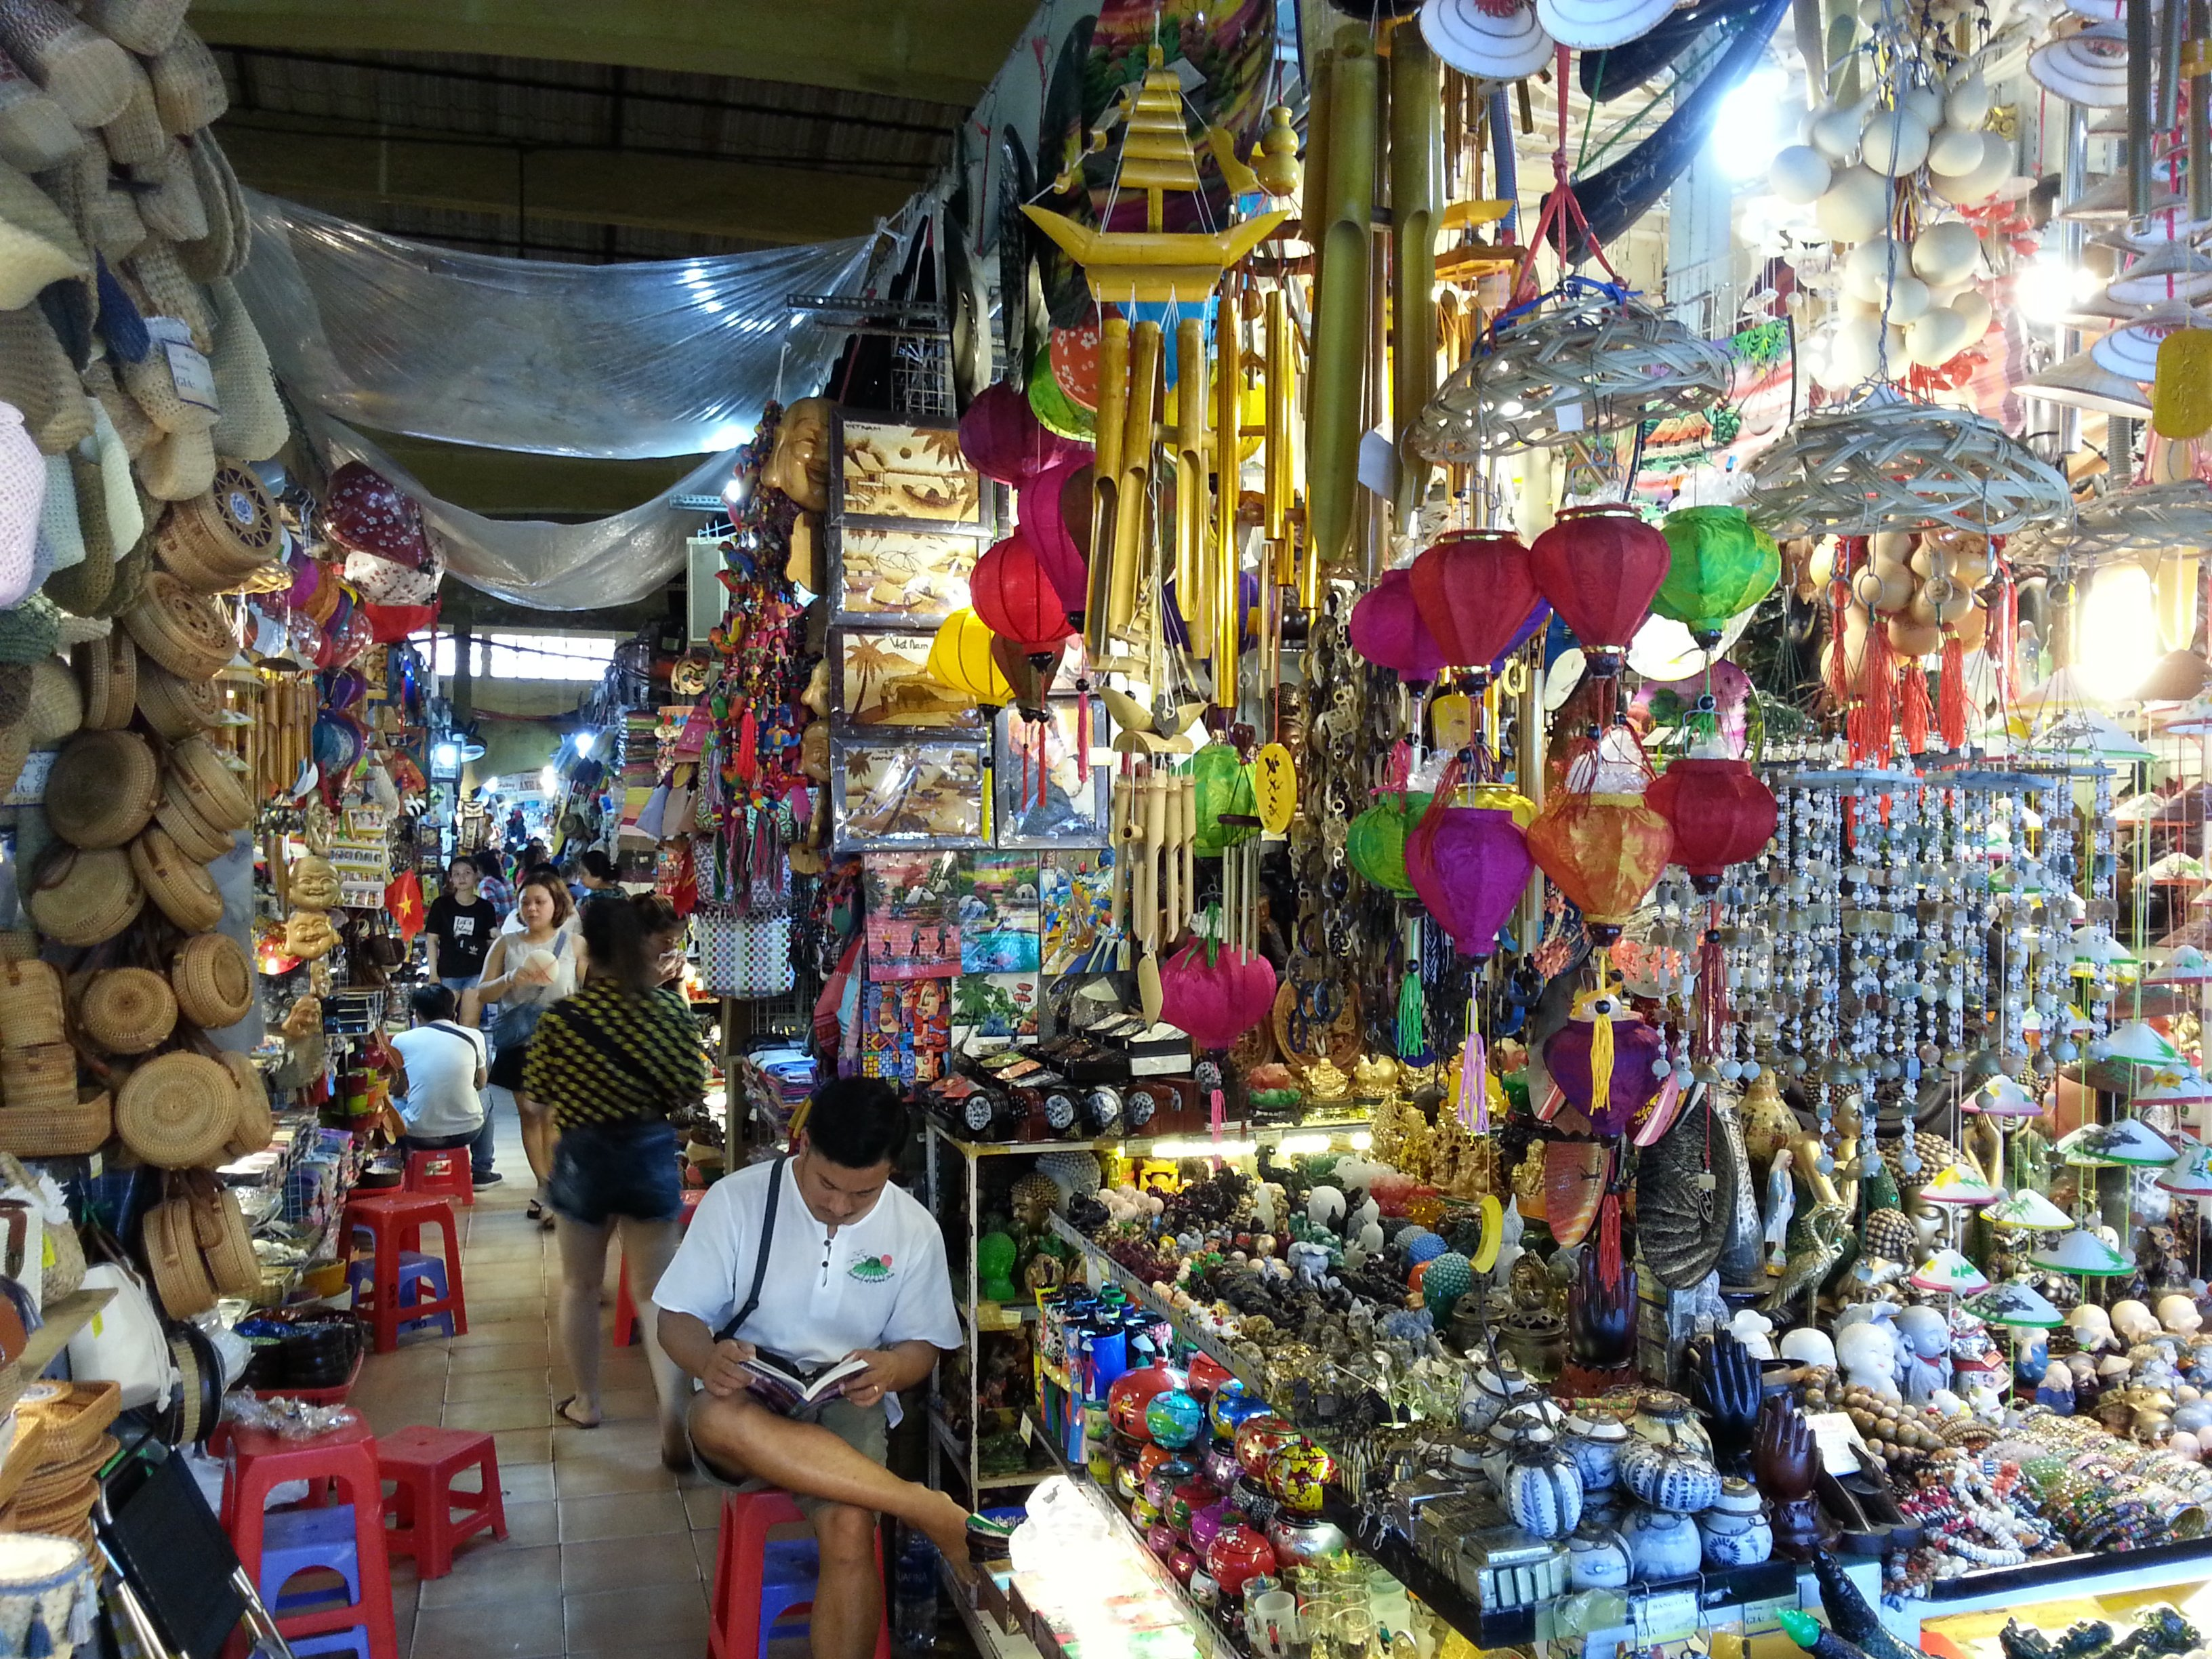 Wind chime stall at Ben Thanh Market